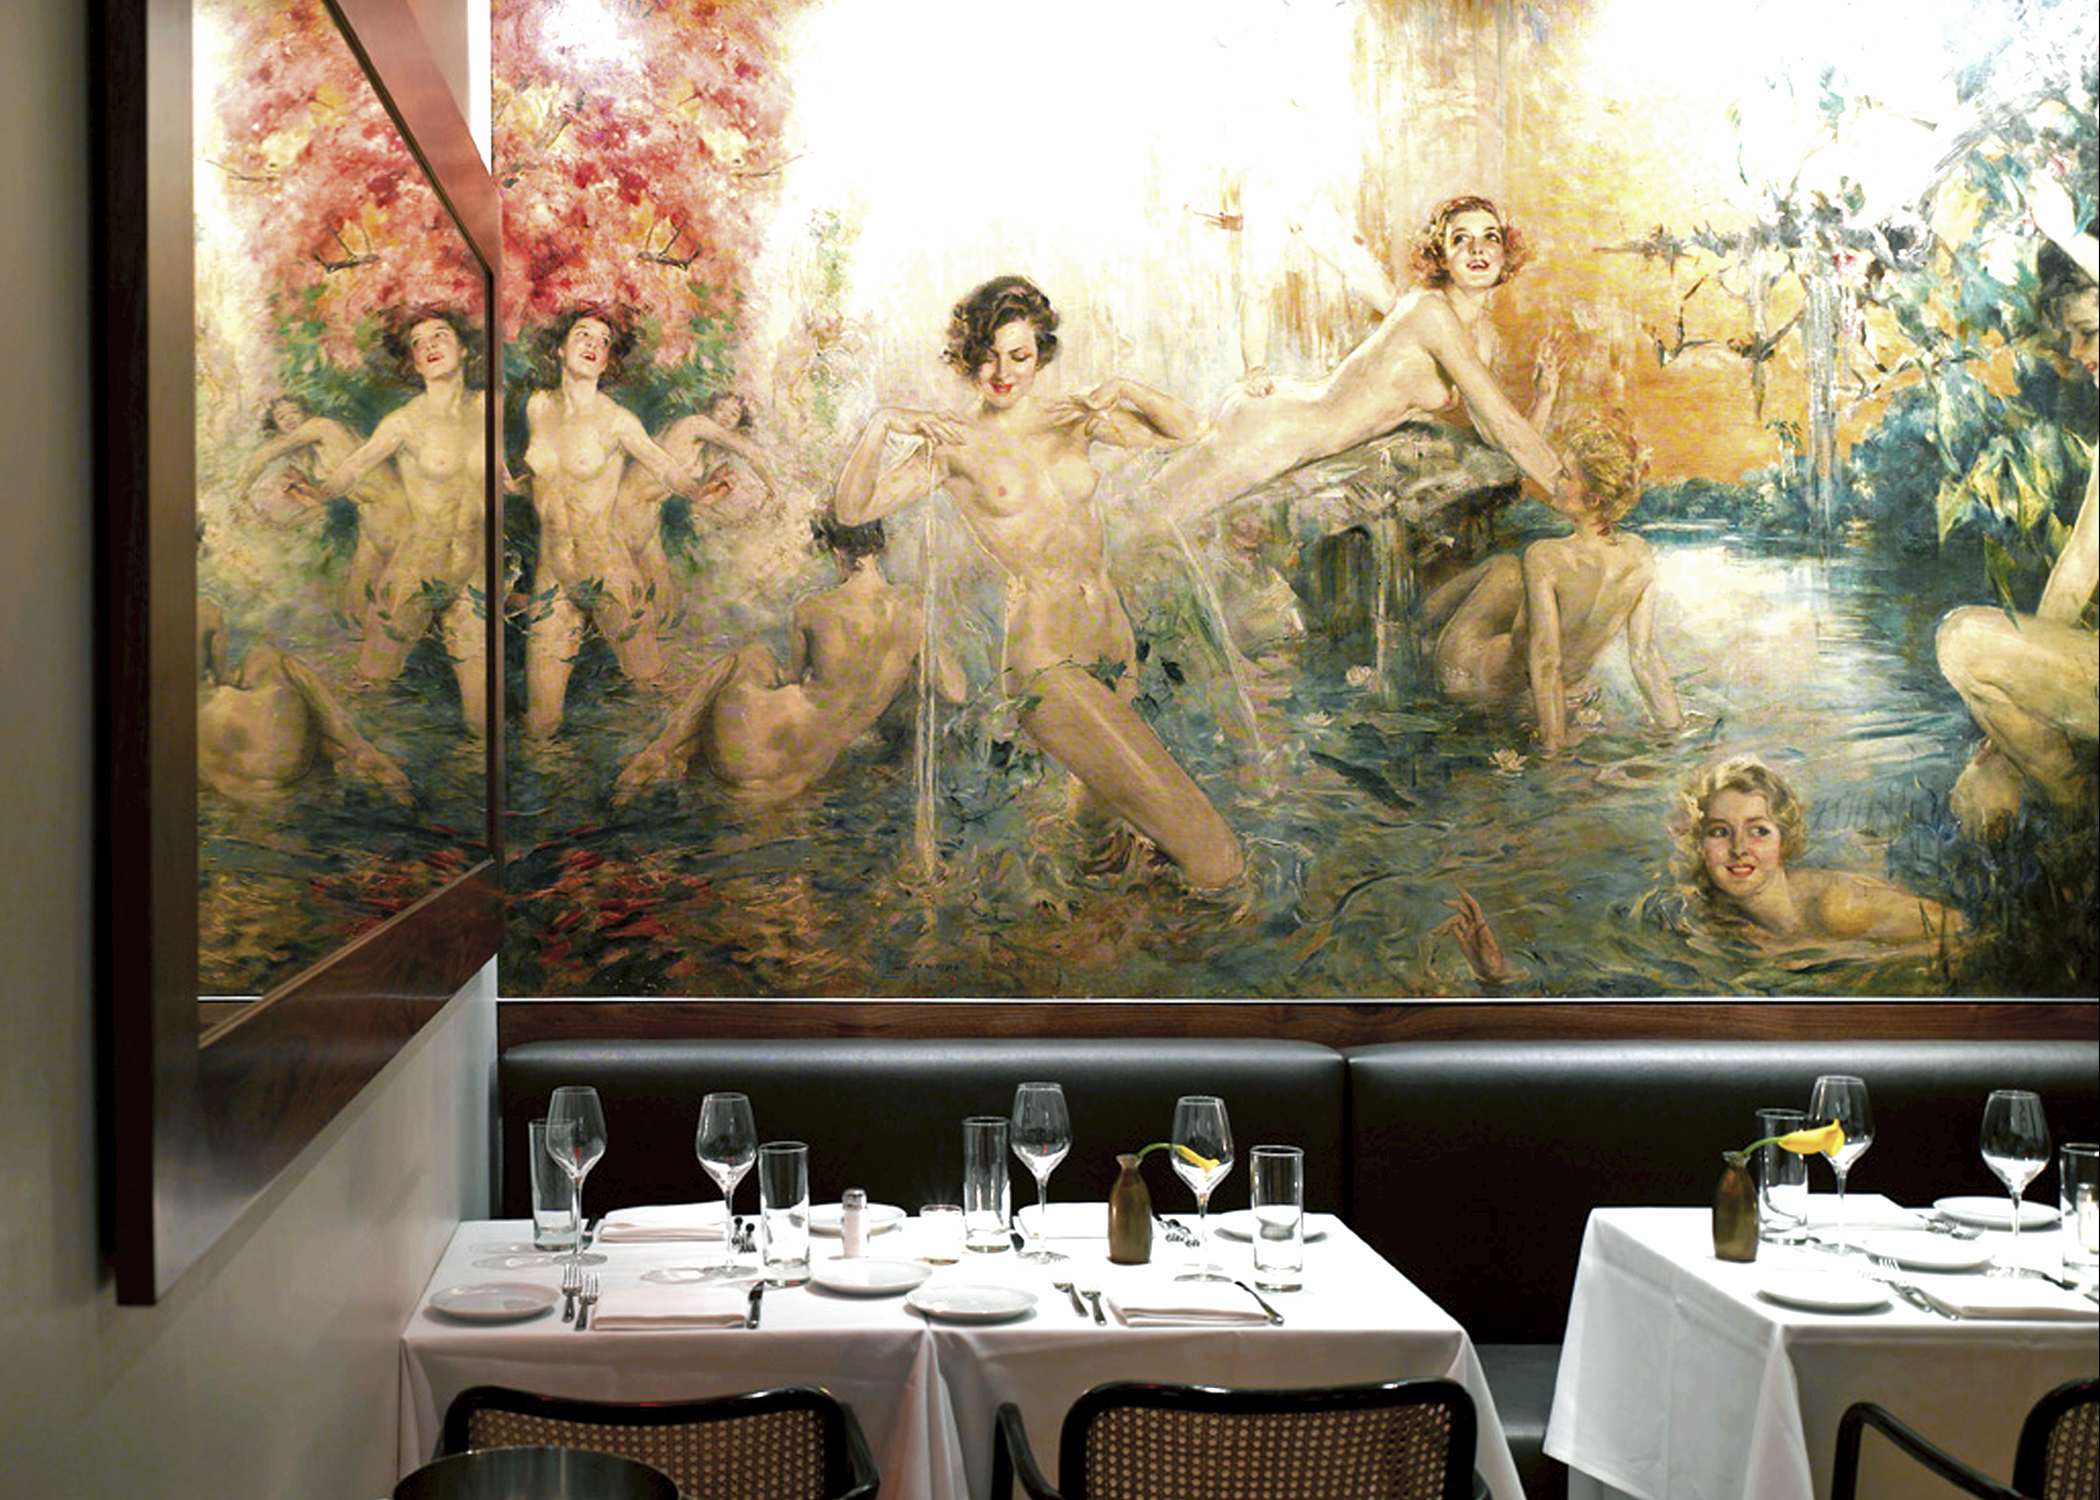 RESTAURANT...Howard Chandler Christy's mural in The Leopard